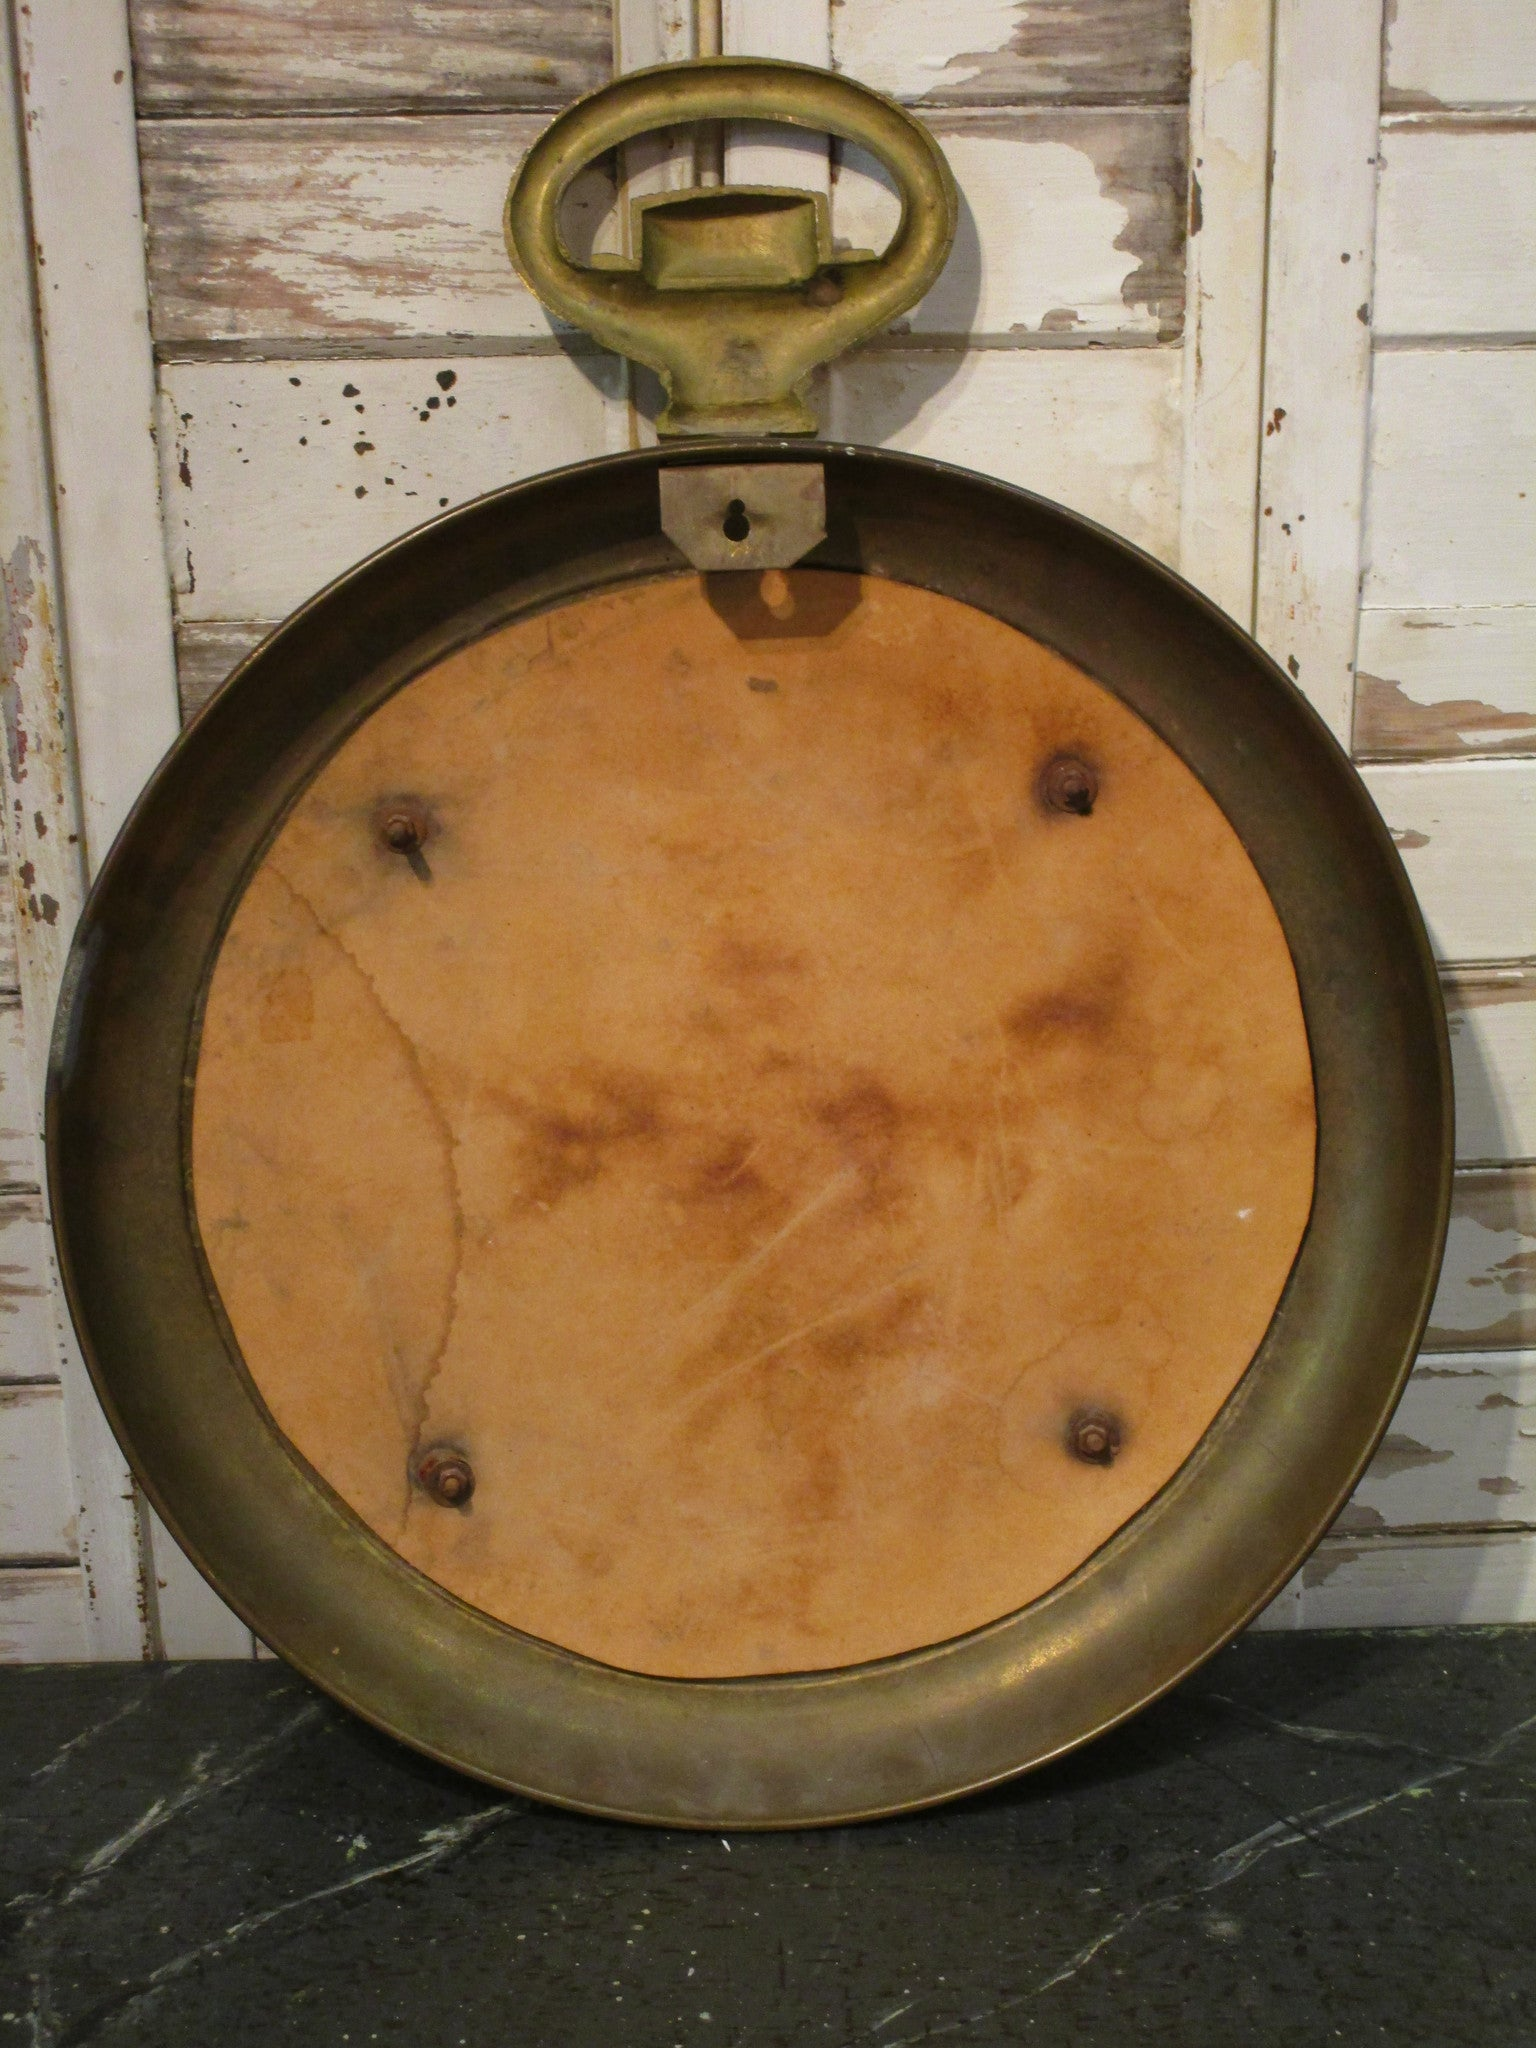 Round horlogerie mirror from a French watchmaker